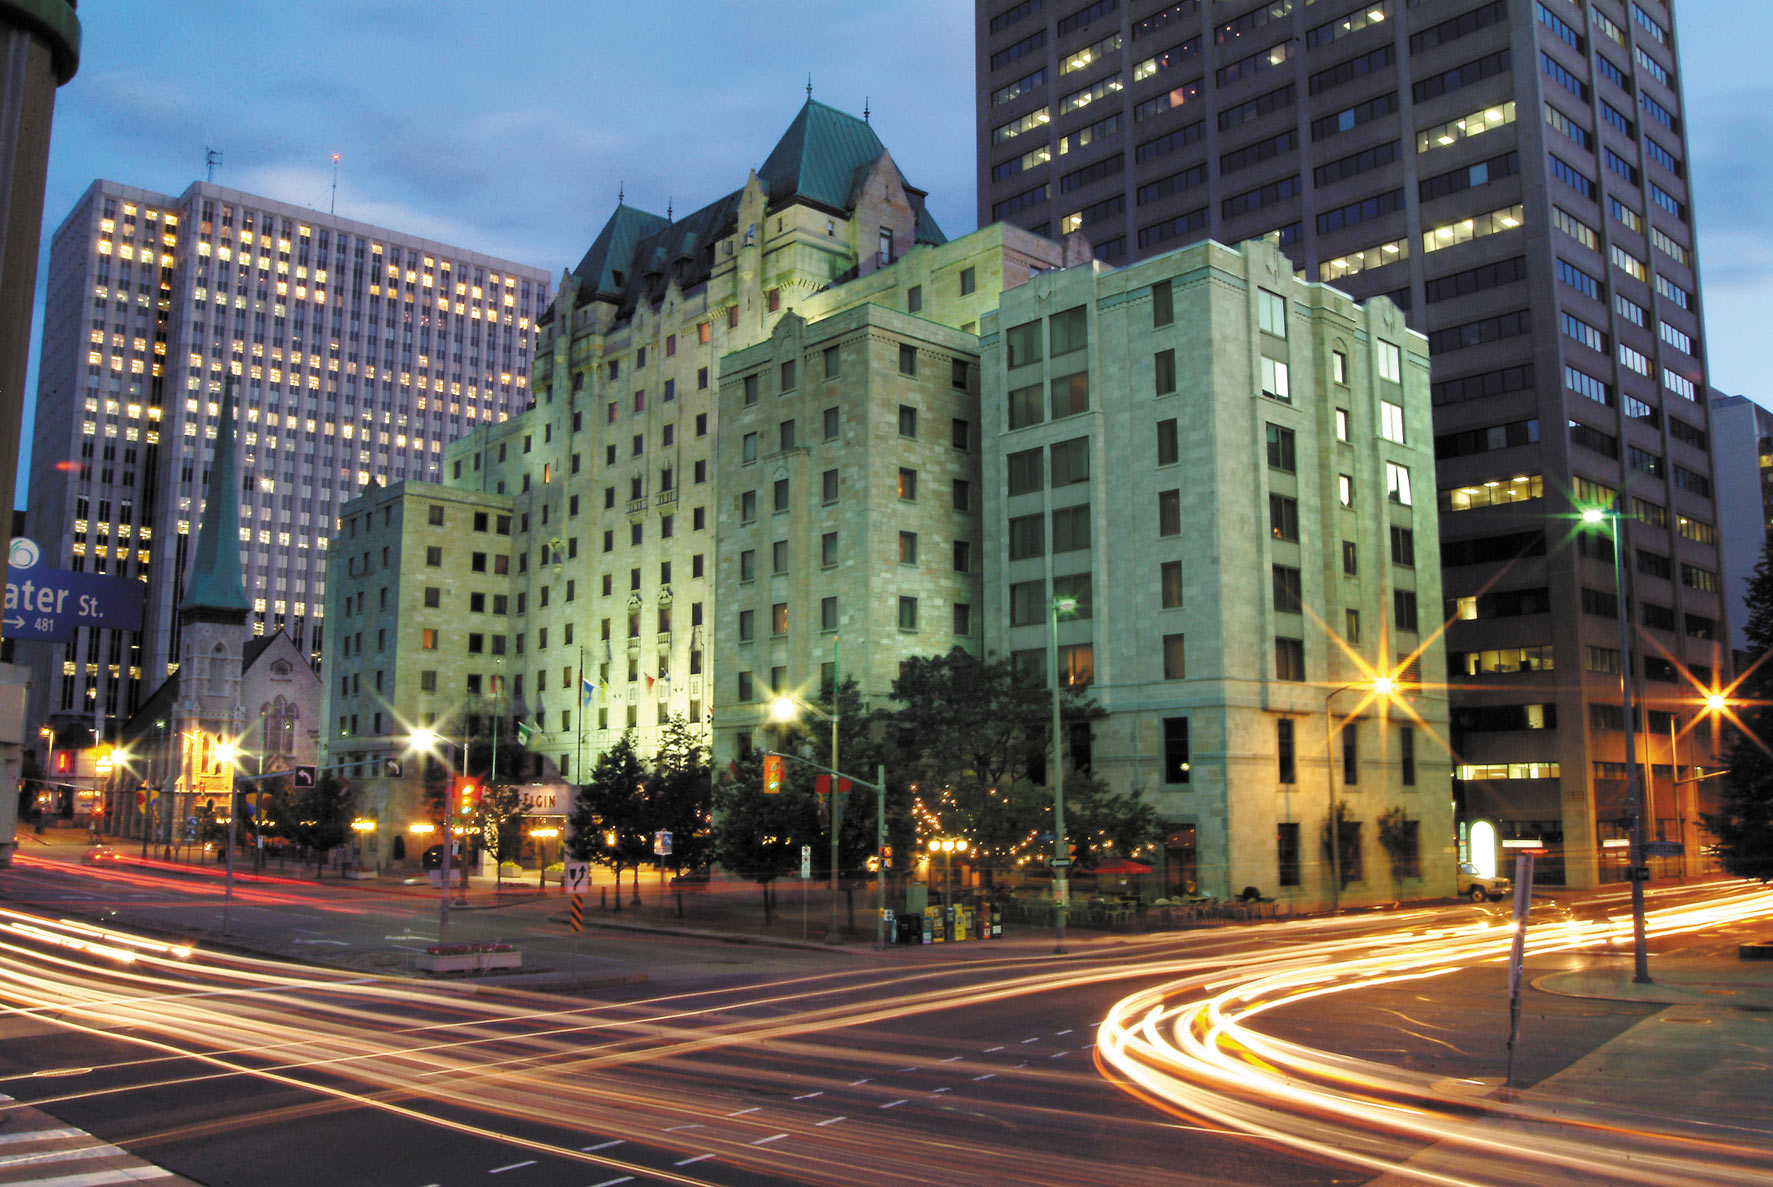 Lord Elgin Hotel at dusk time-lapse photo in downtown Ottawa